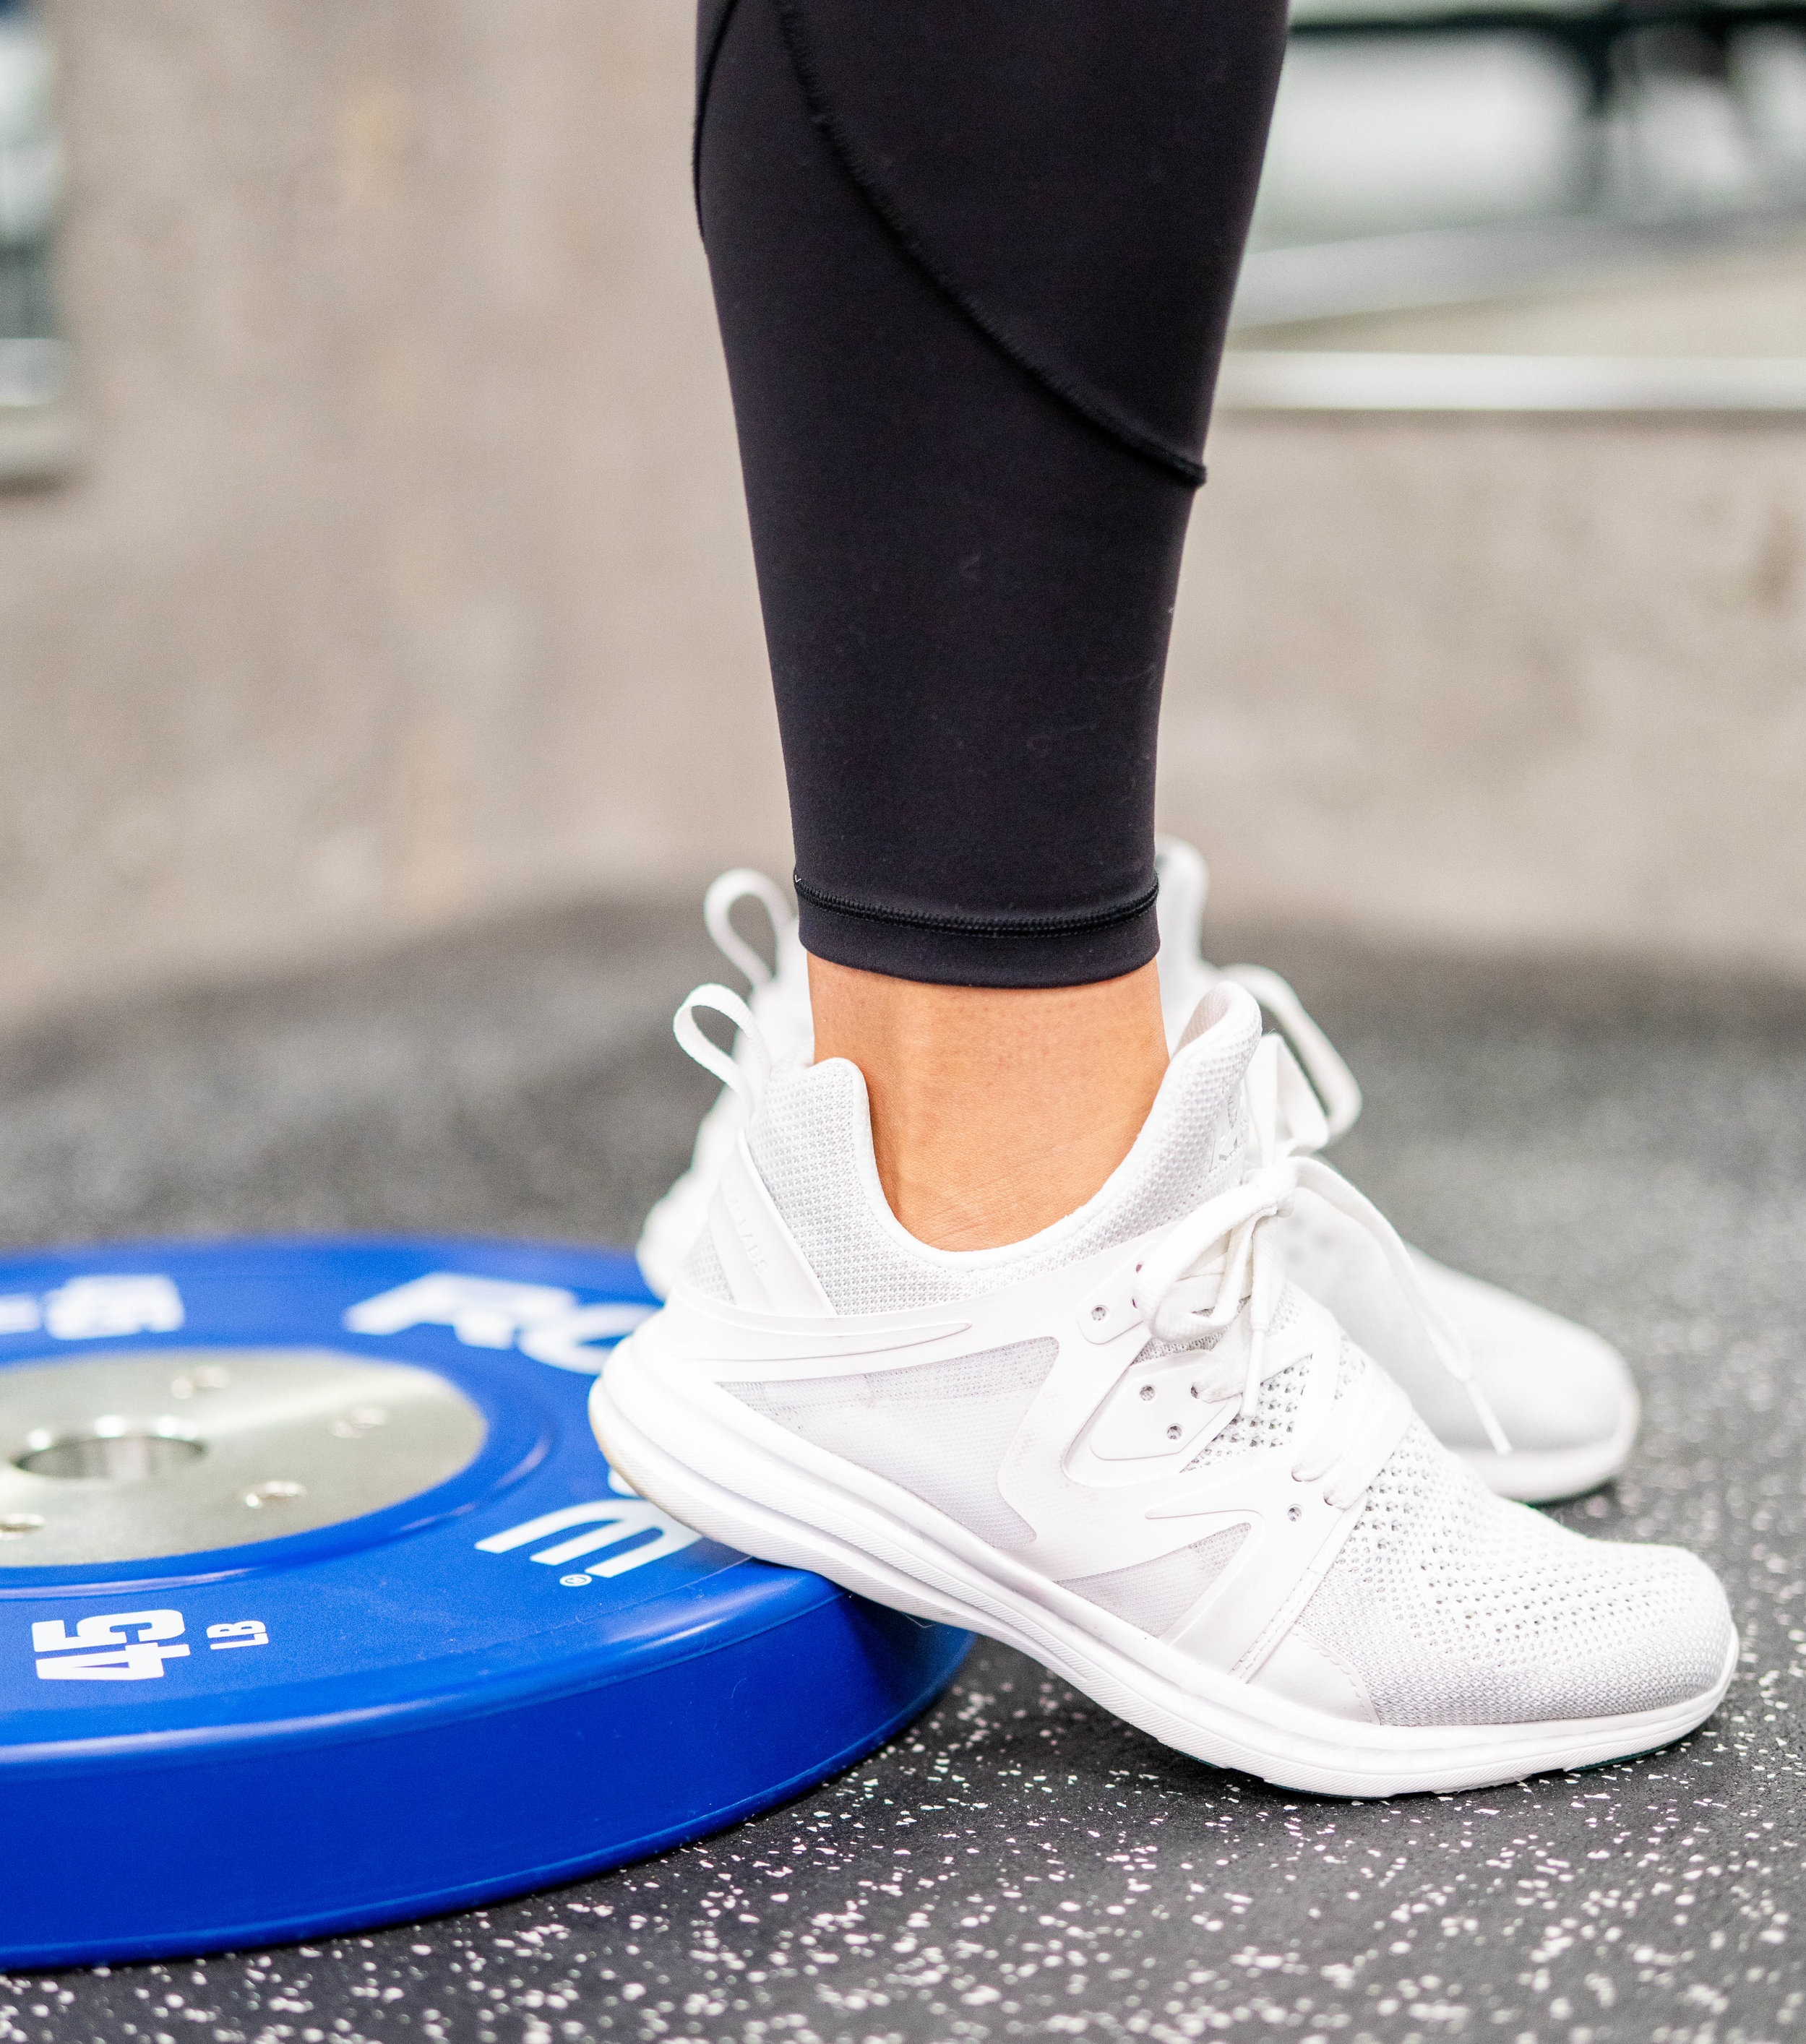 Which shoes are right for your workout